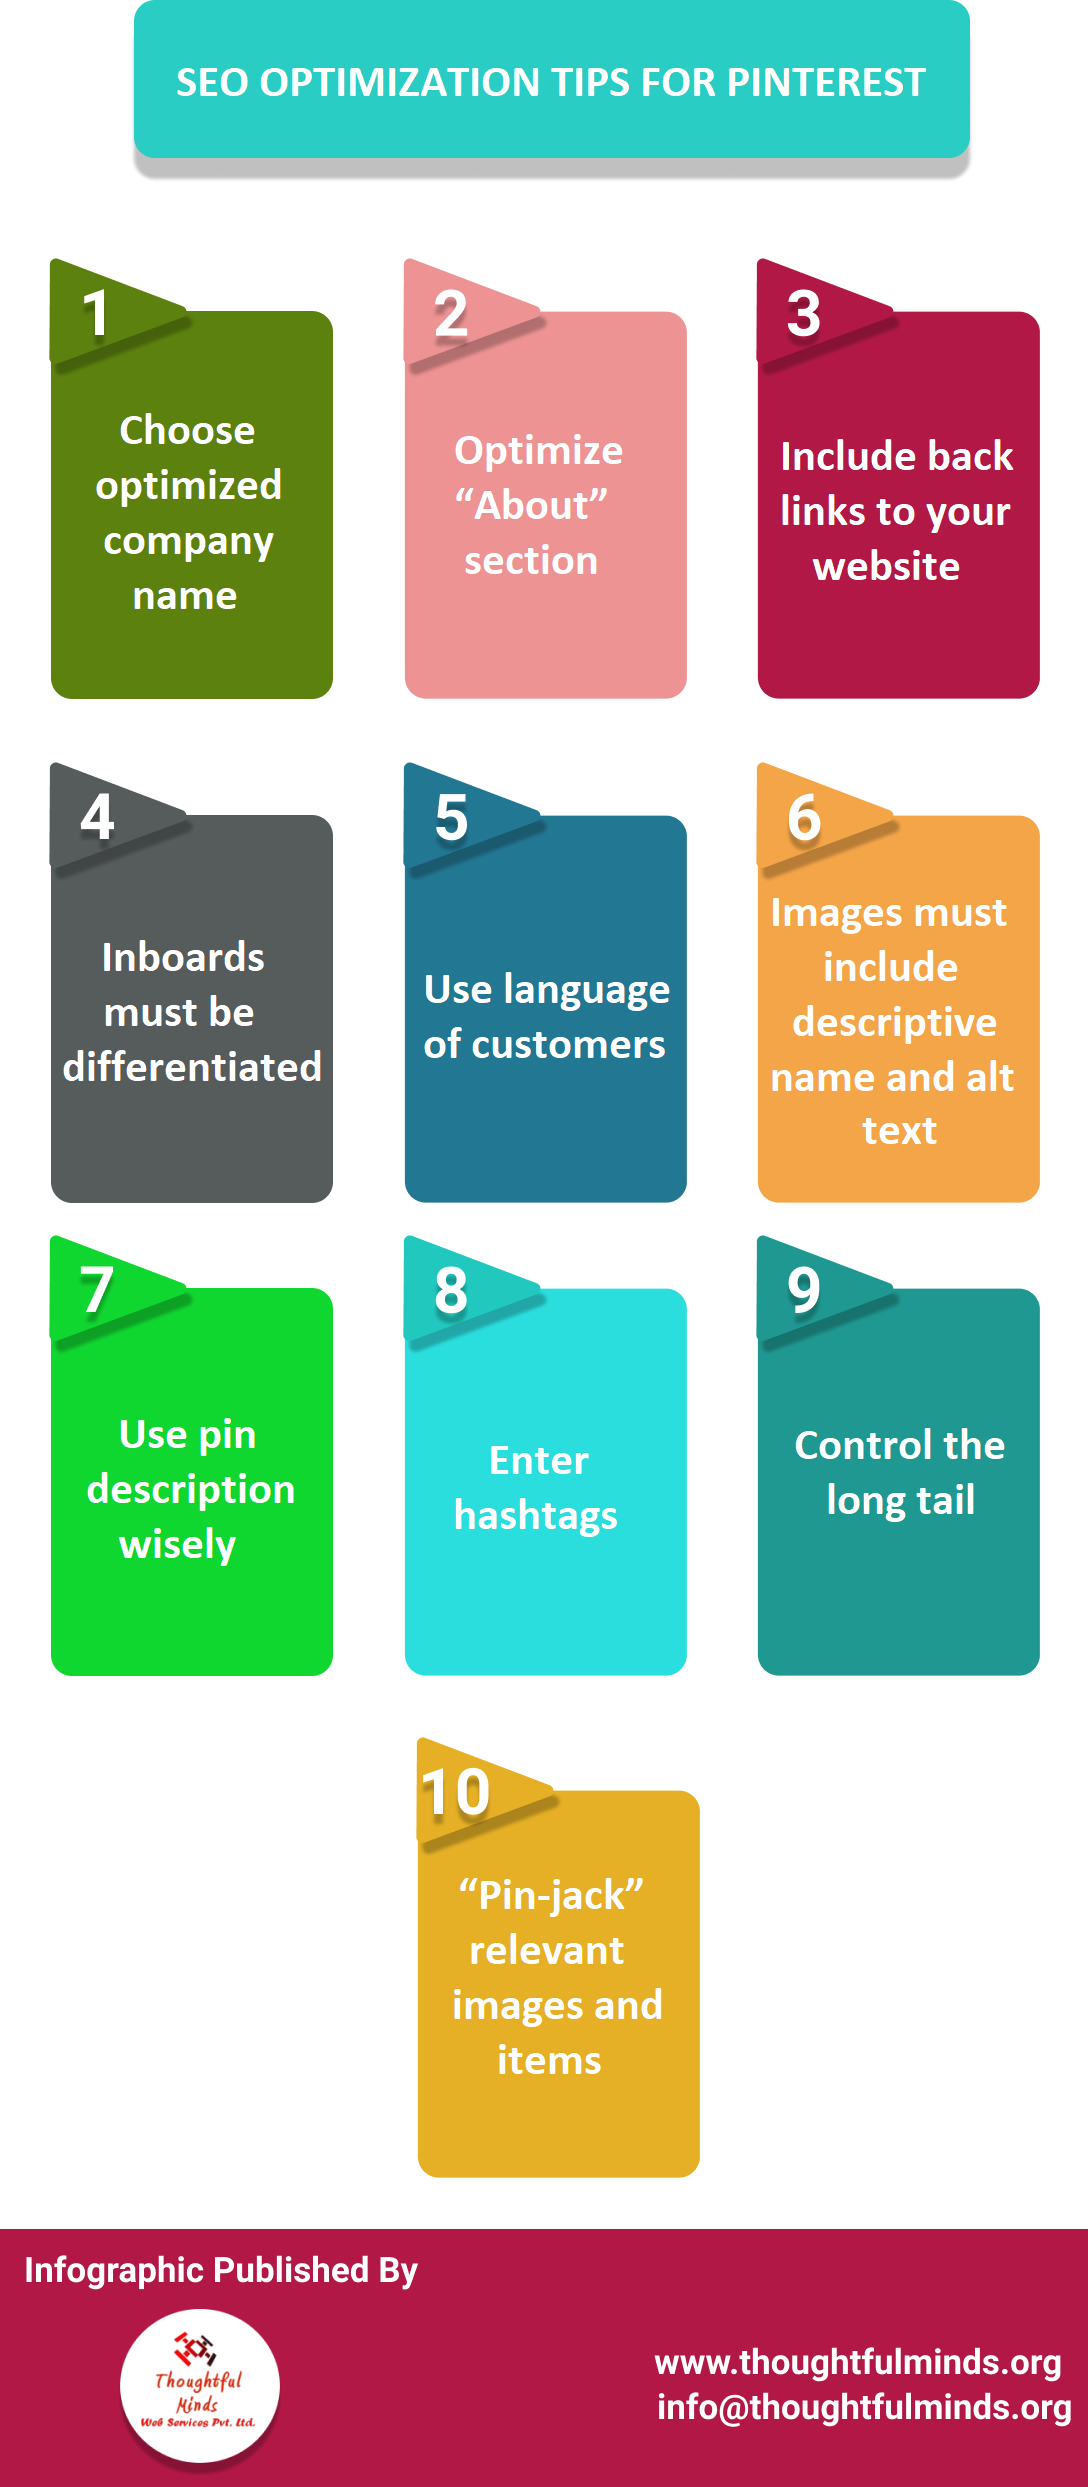 Infographic On SEO Optimization Tips For Pinterest - ThoughtfulMinds